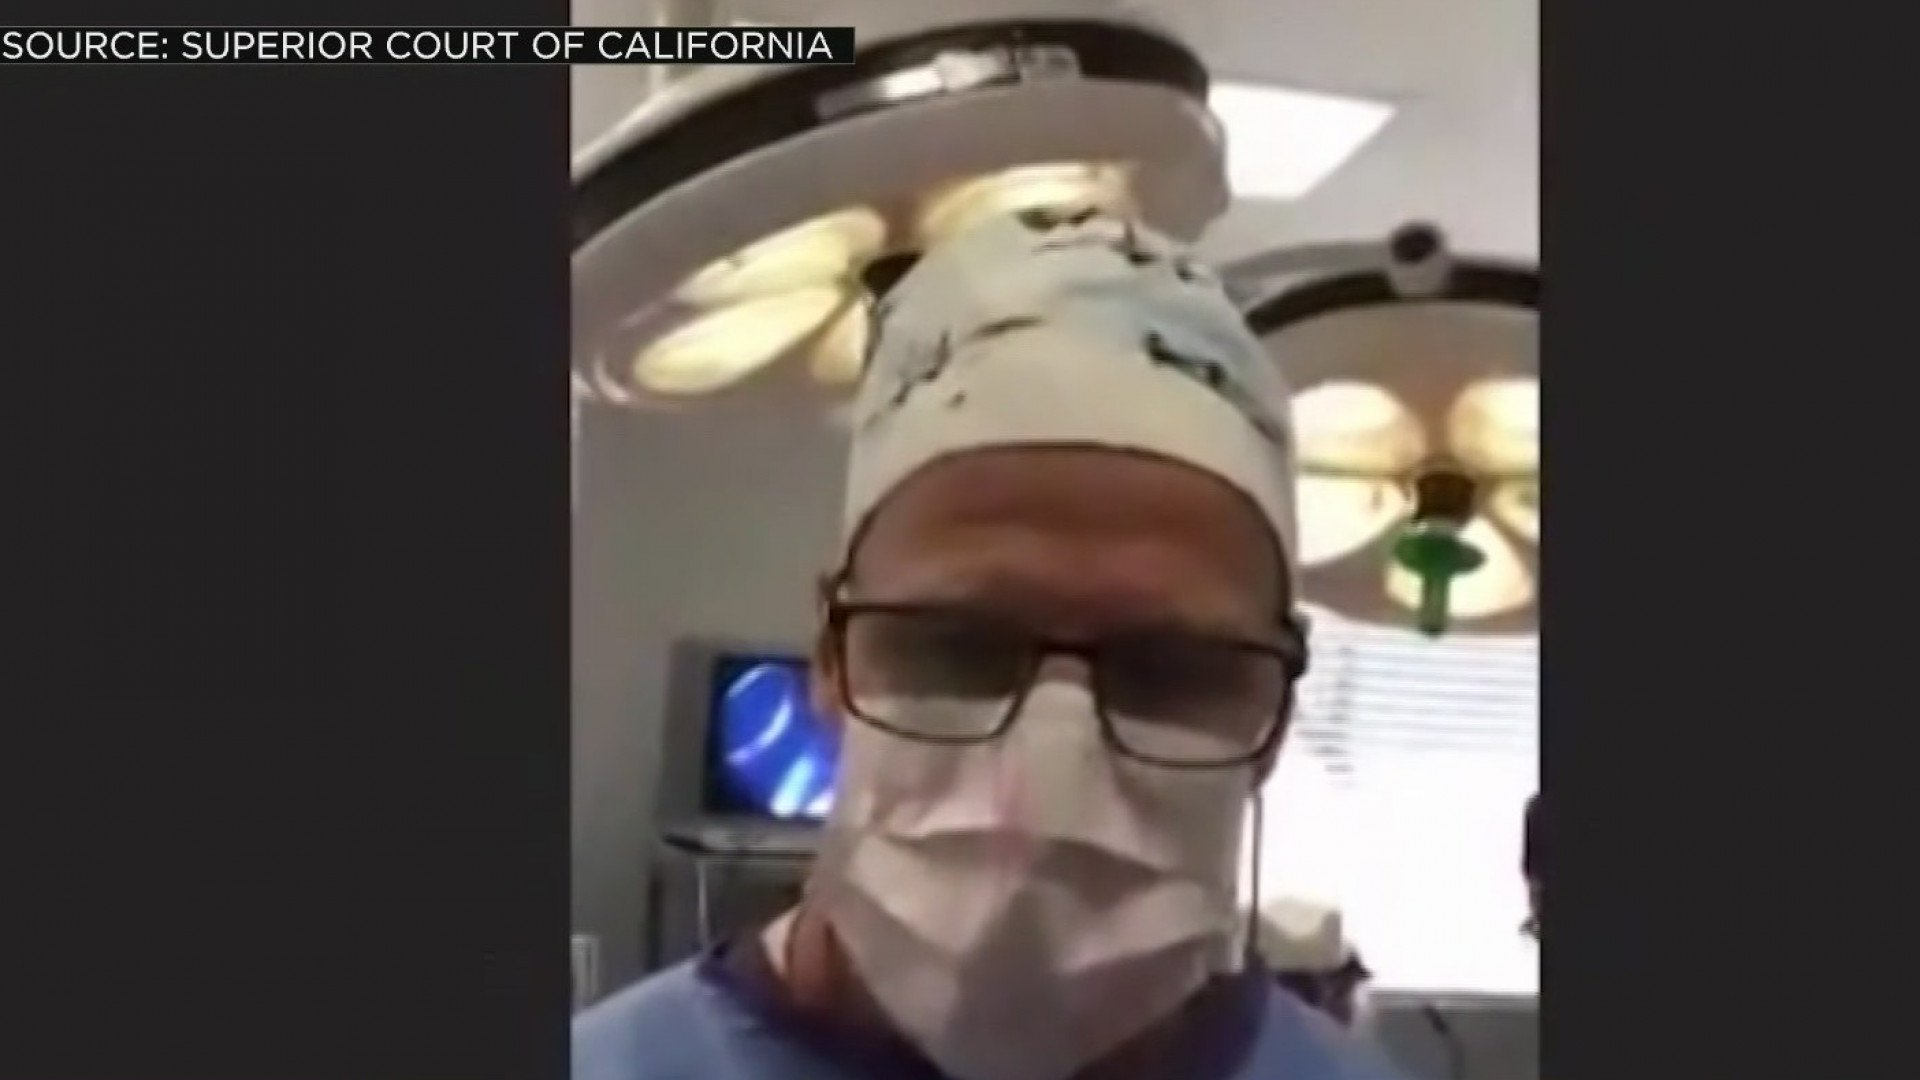 A California doctor performed surgery during a Zoom court appearance